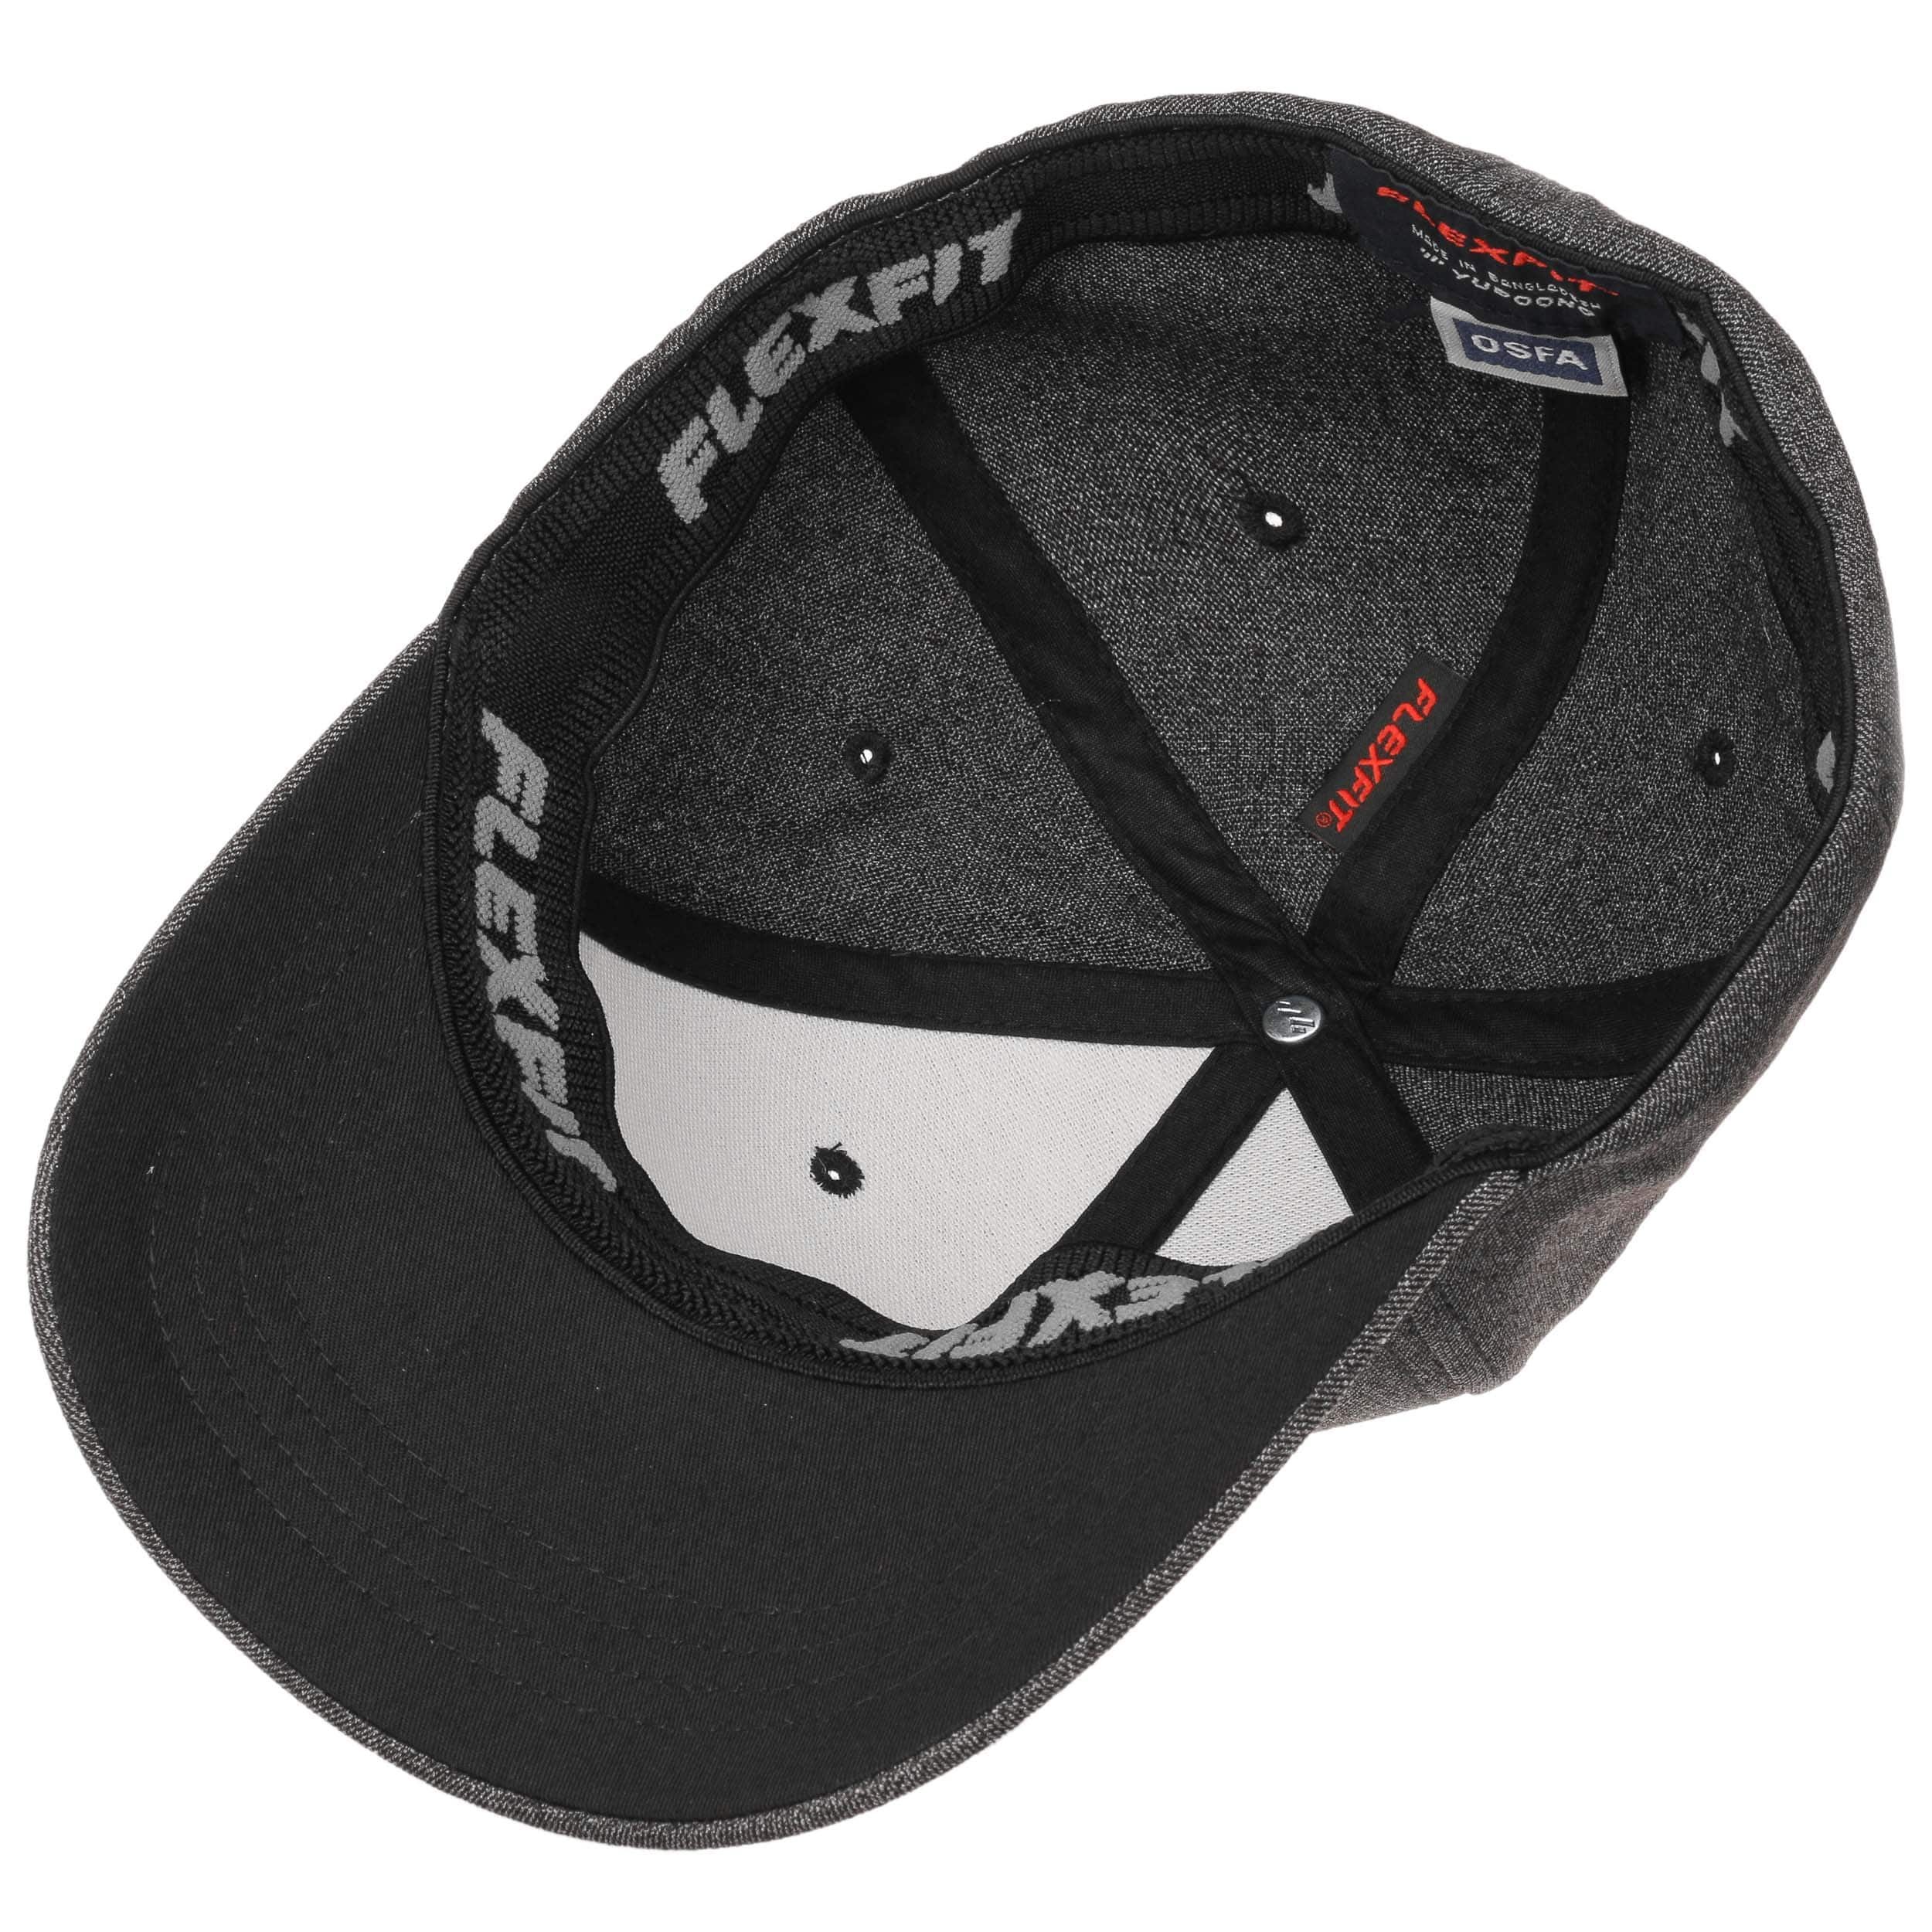 finest selection 5e04c ab6e0 ... italy germany station flexfit cap by billabong black 2 b393a ae712  08100 54597